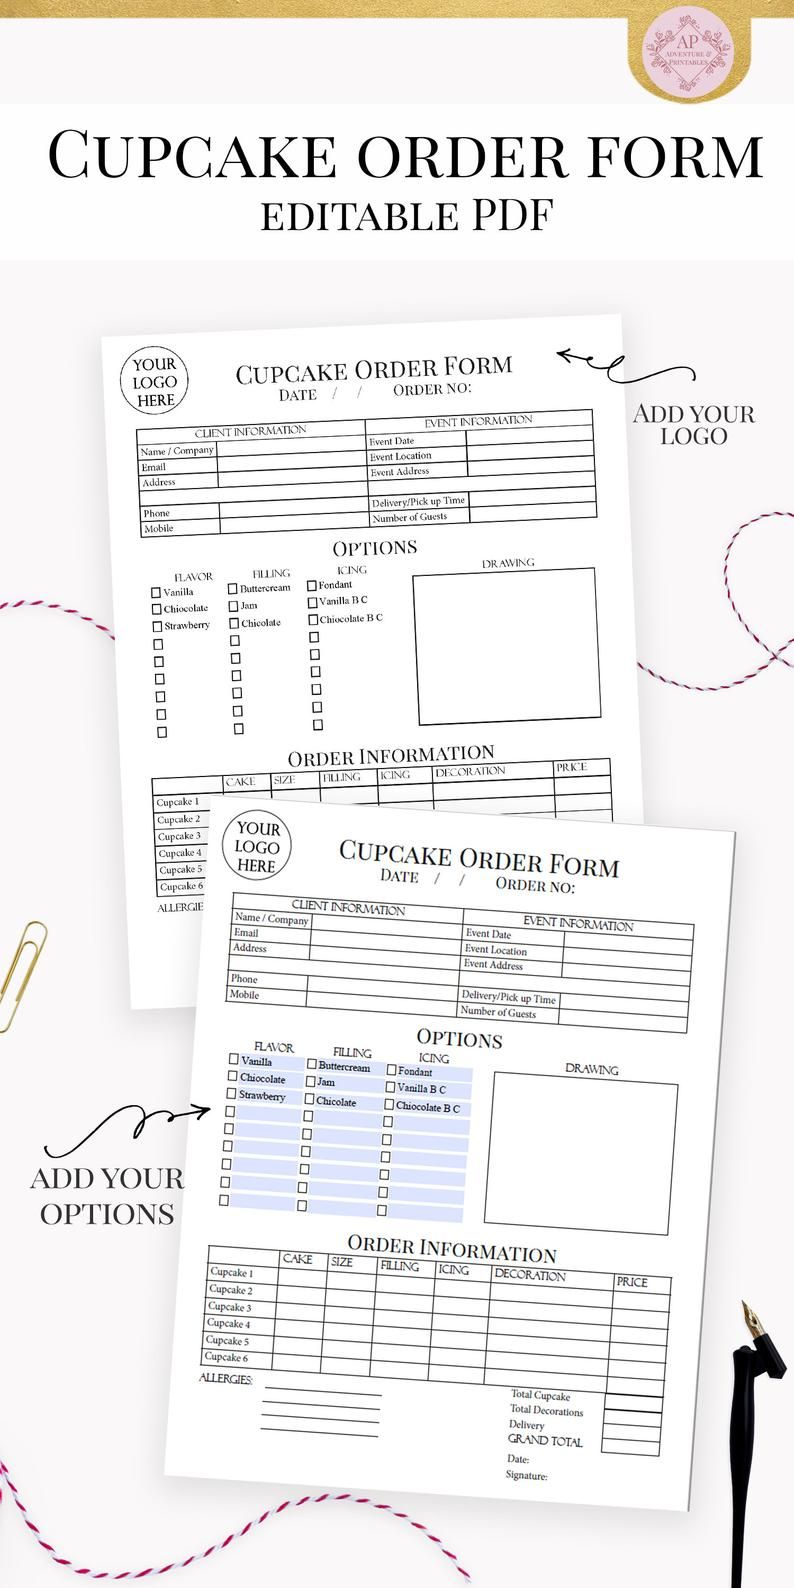 Custom Cupcake Order Form, Bakery Forms, Cupcake Order